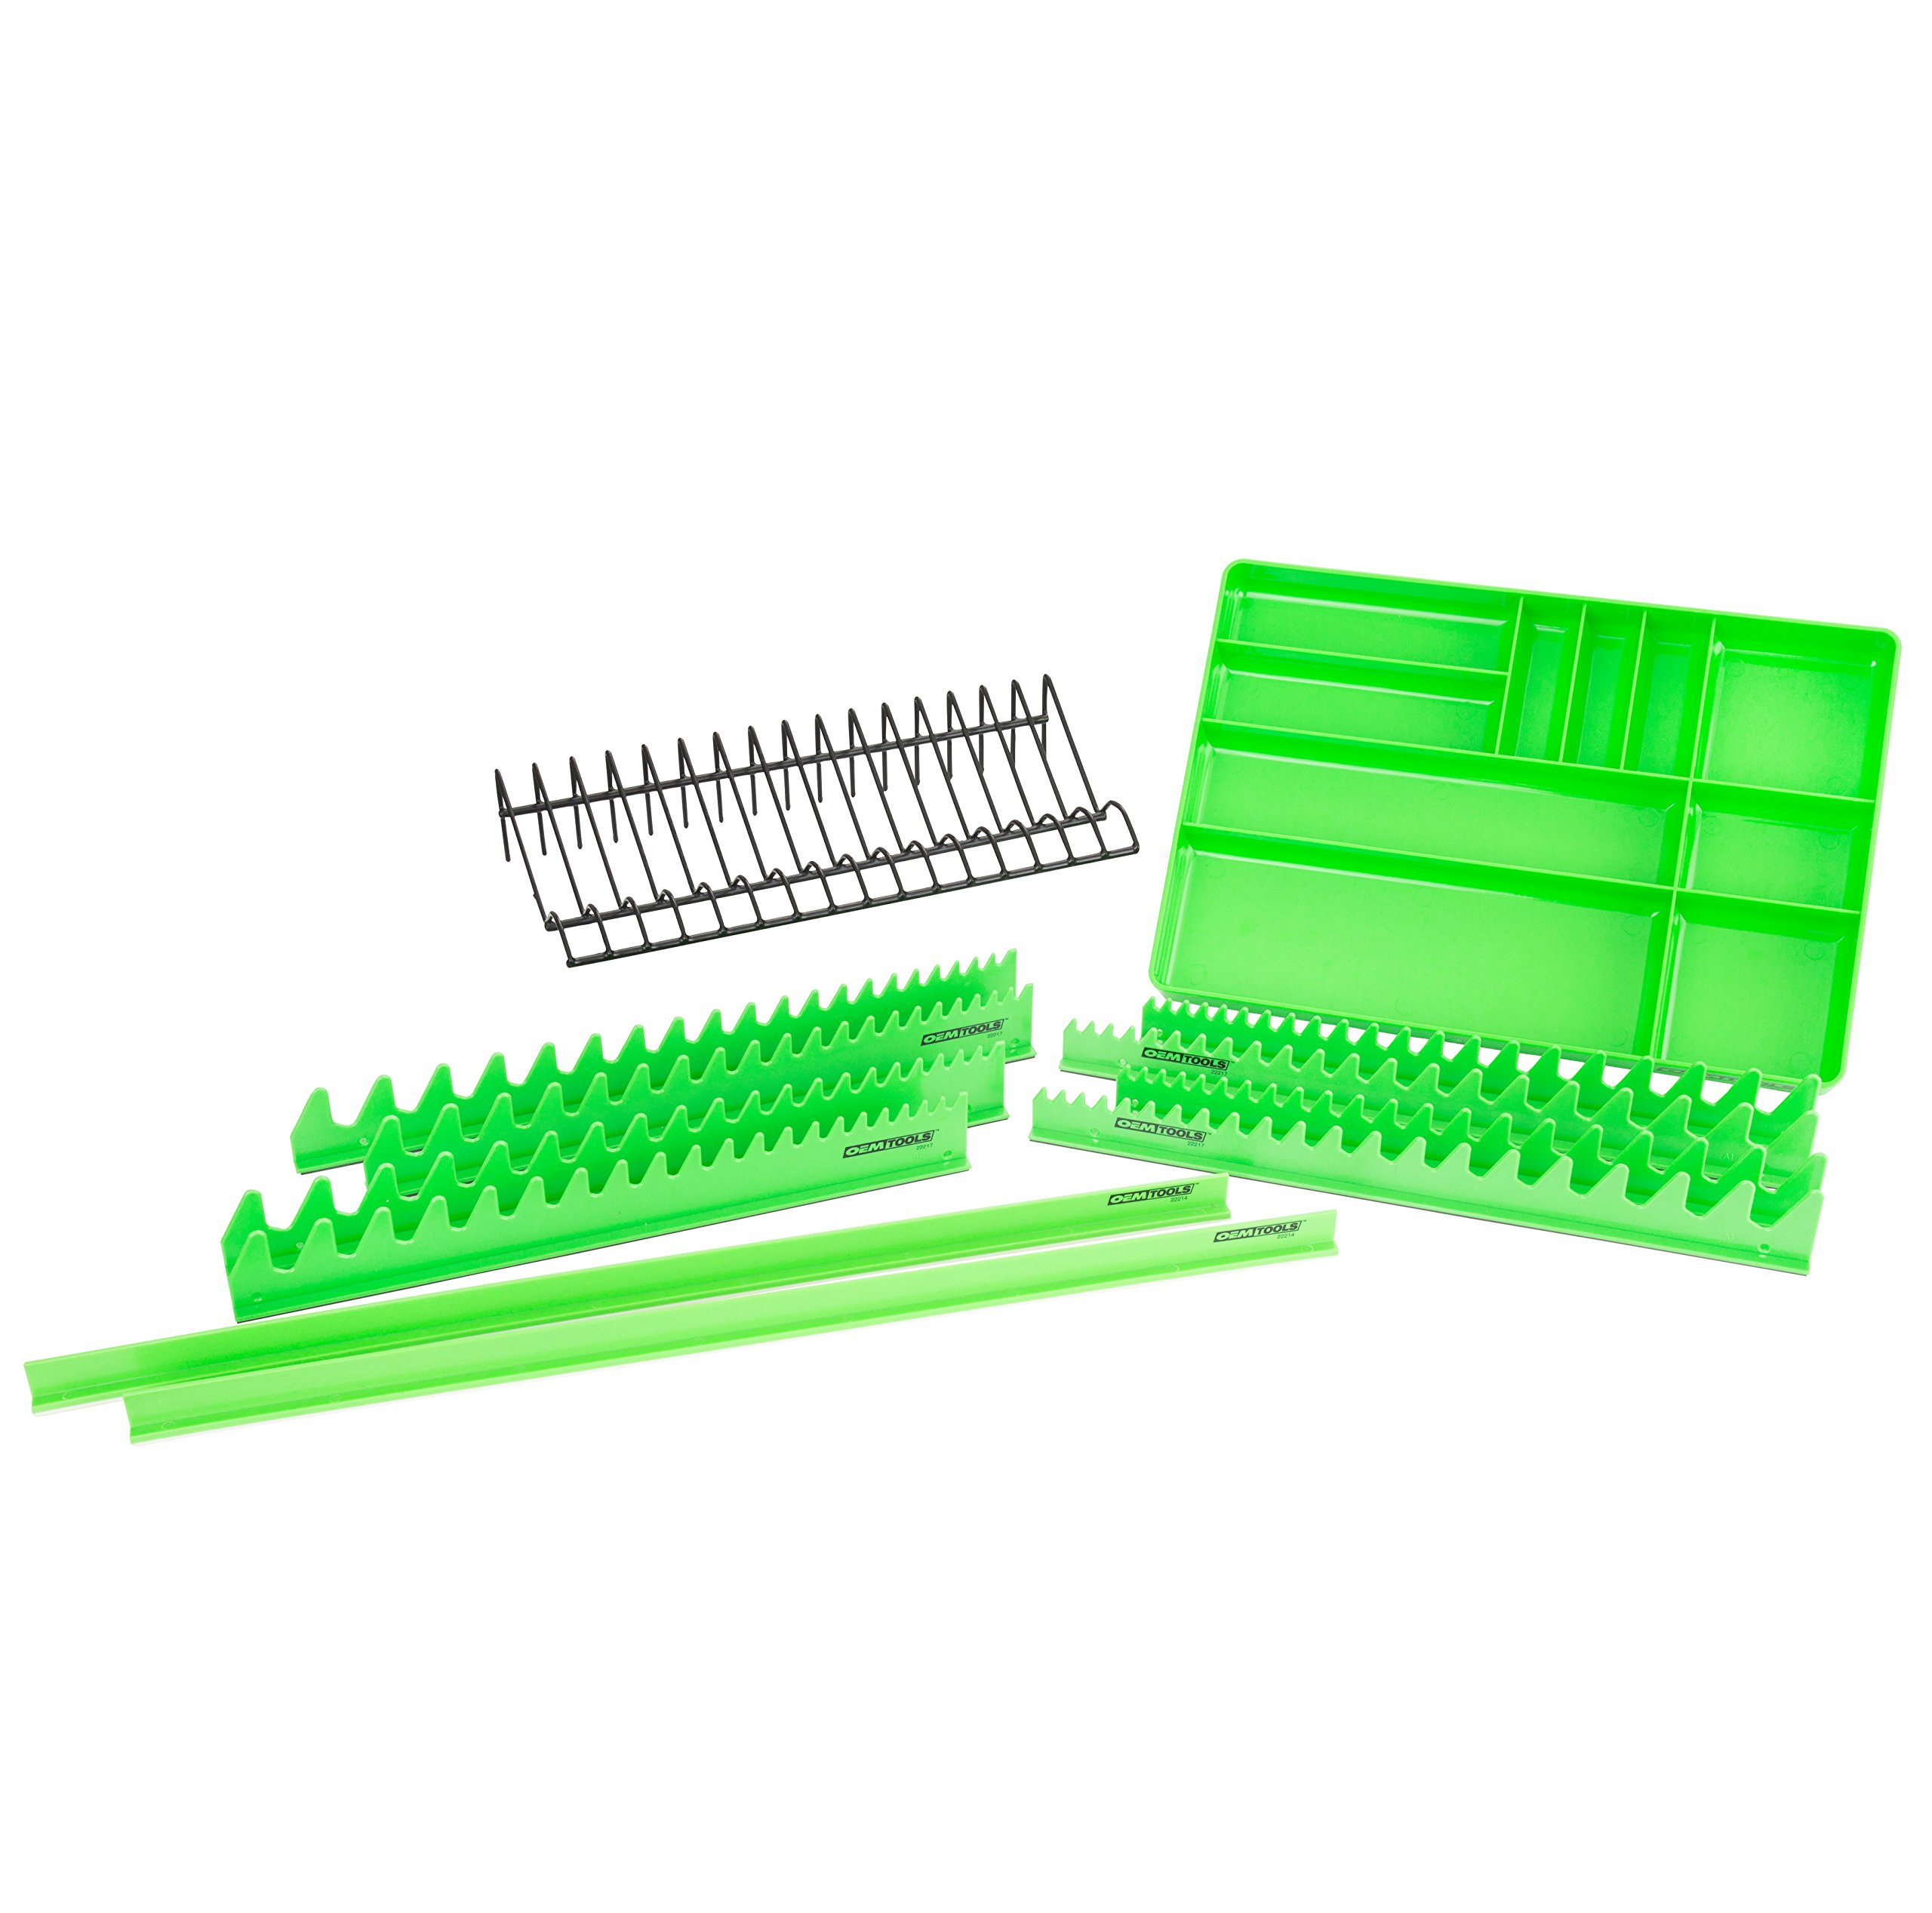 OEMTOOLS 22189 12 Piece Tool Organizer Set - For Organizing and Storing Wrenches, Pliers, Tools and Parts - Includes Organizing Tray and Drawer Dividers by OEMTOOLS